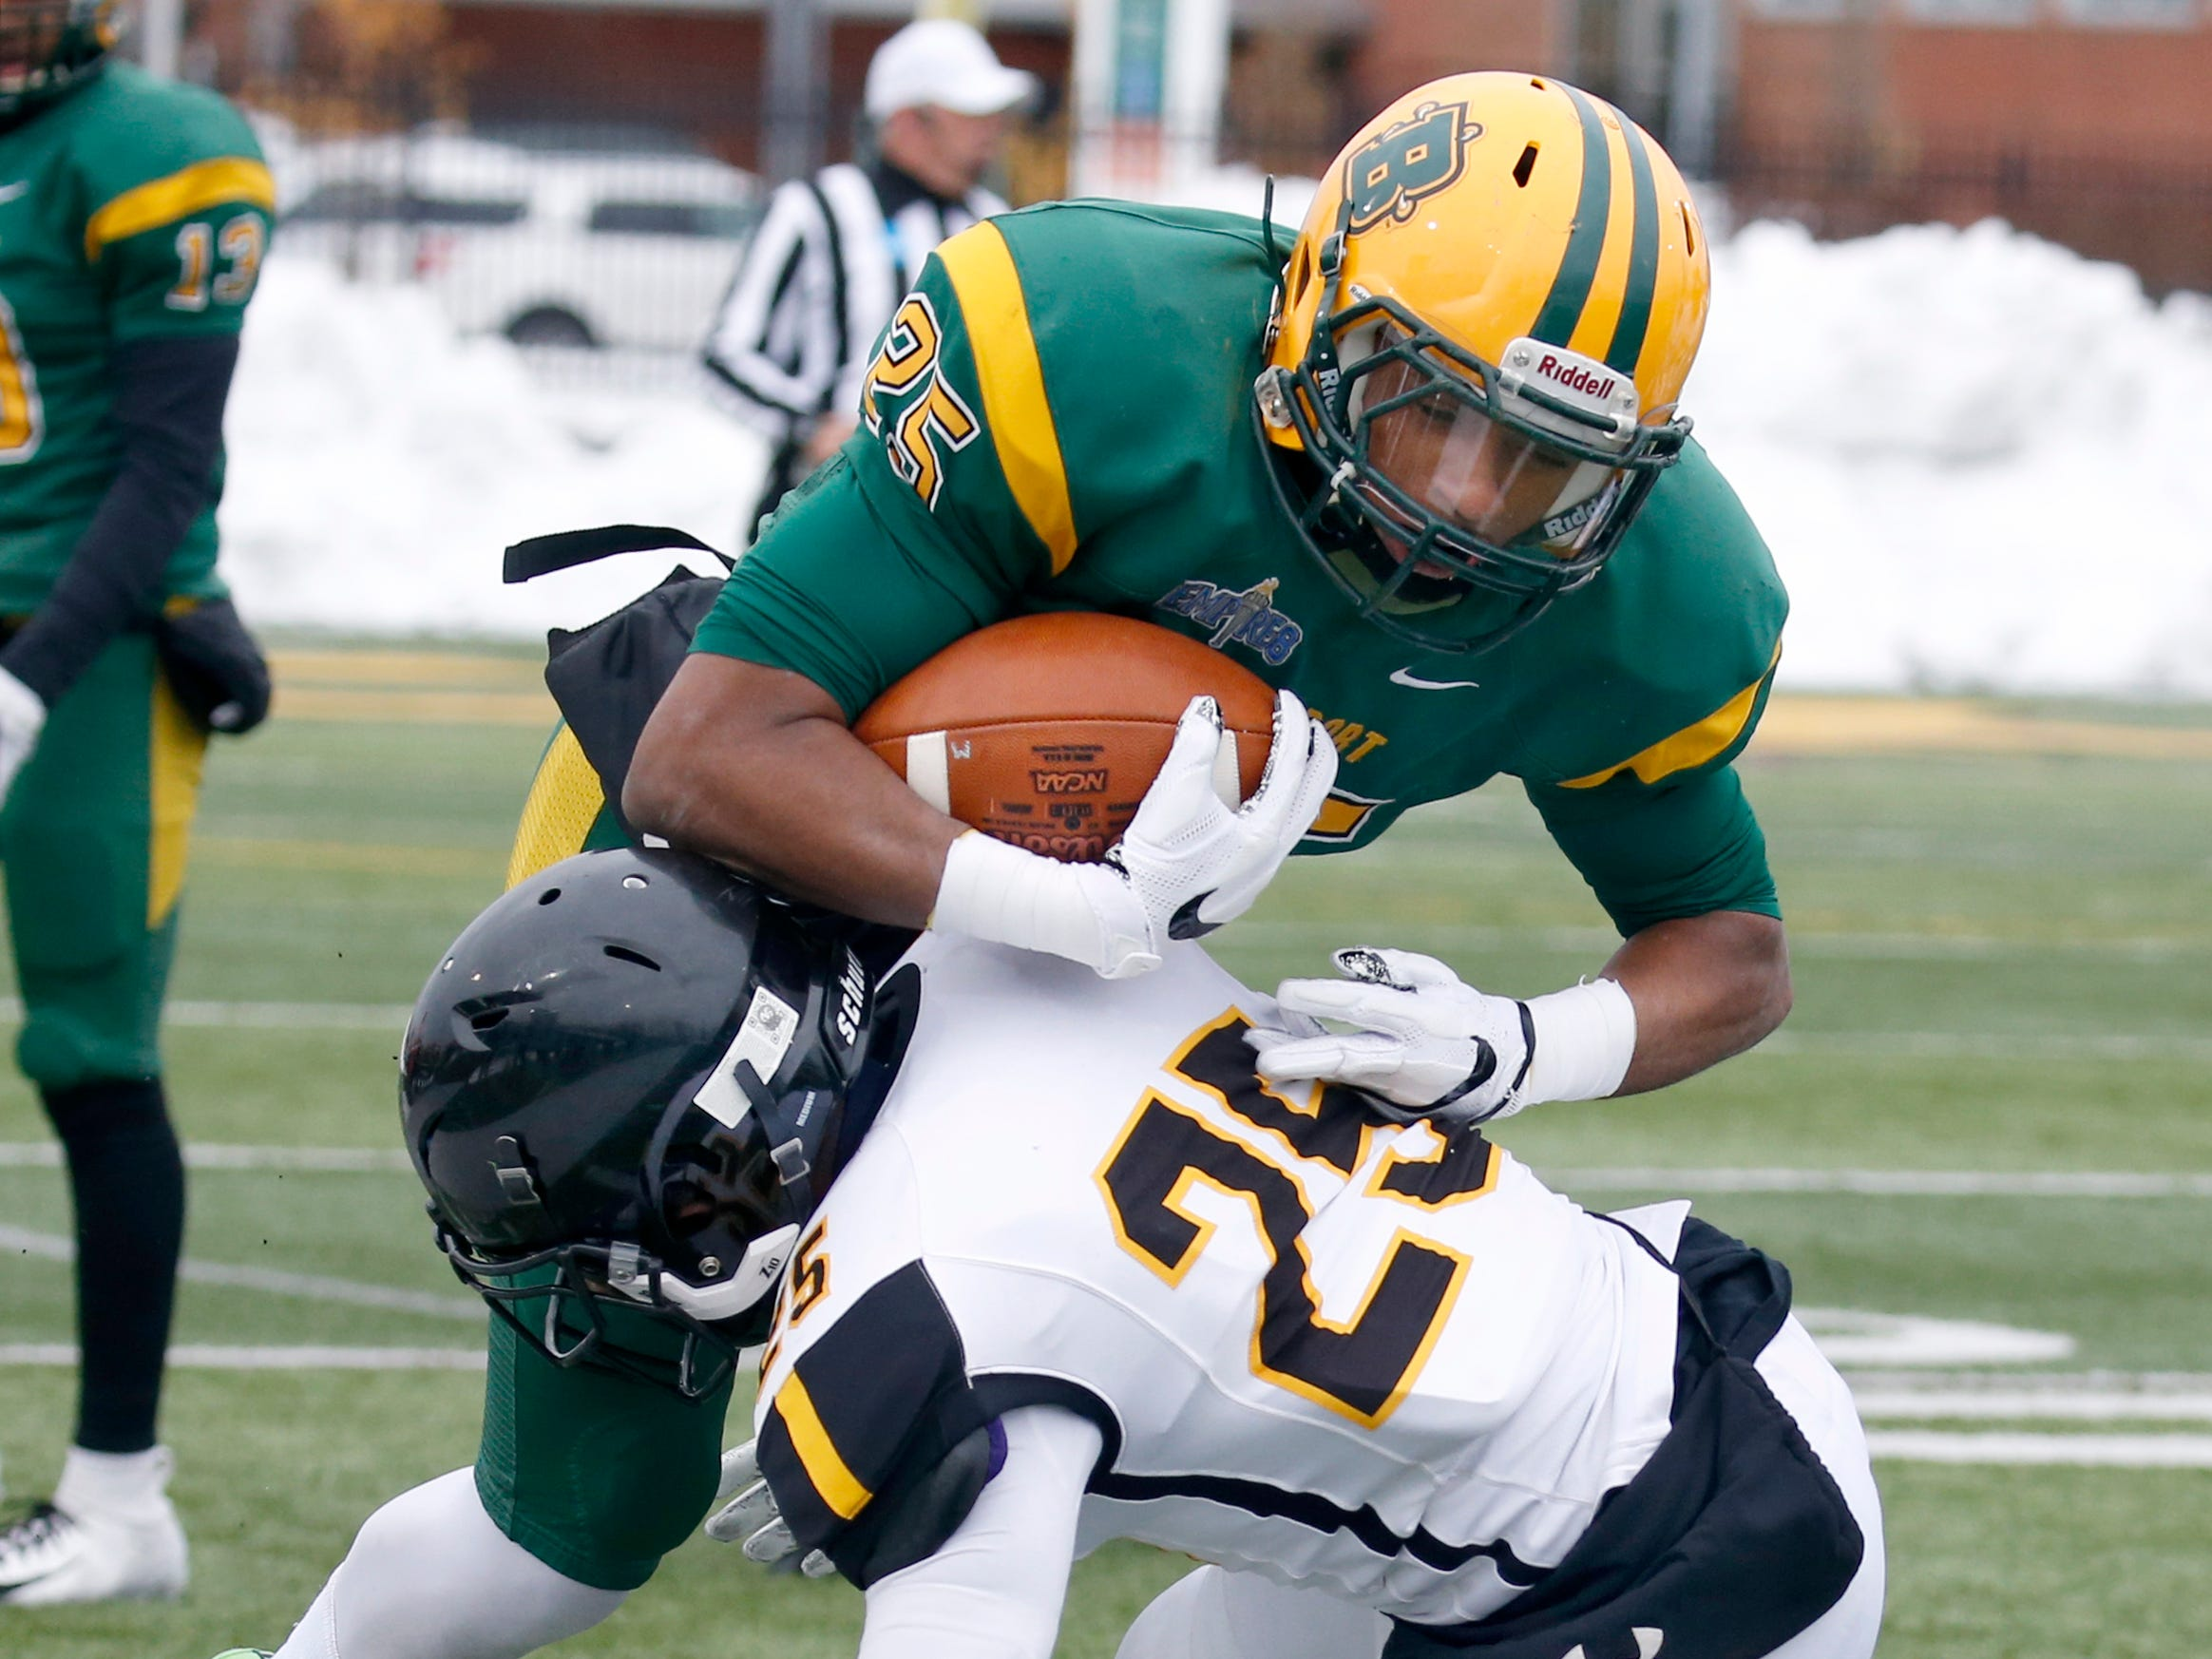 College at Brockport upset by RPI in second round of NCAA Division III Football playoffs